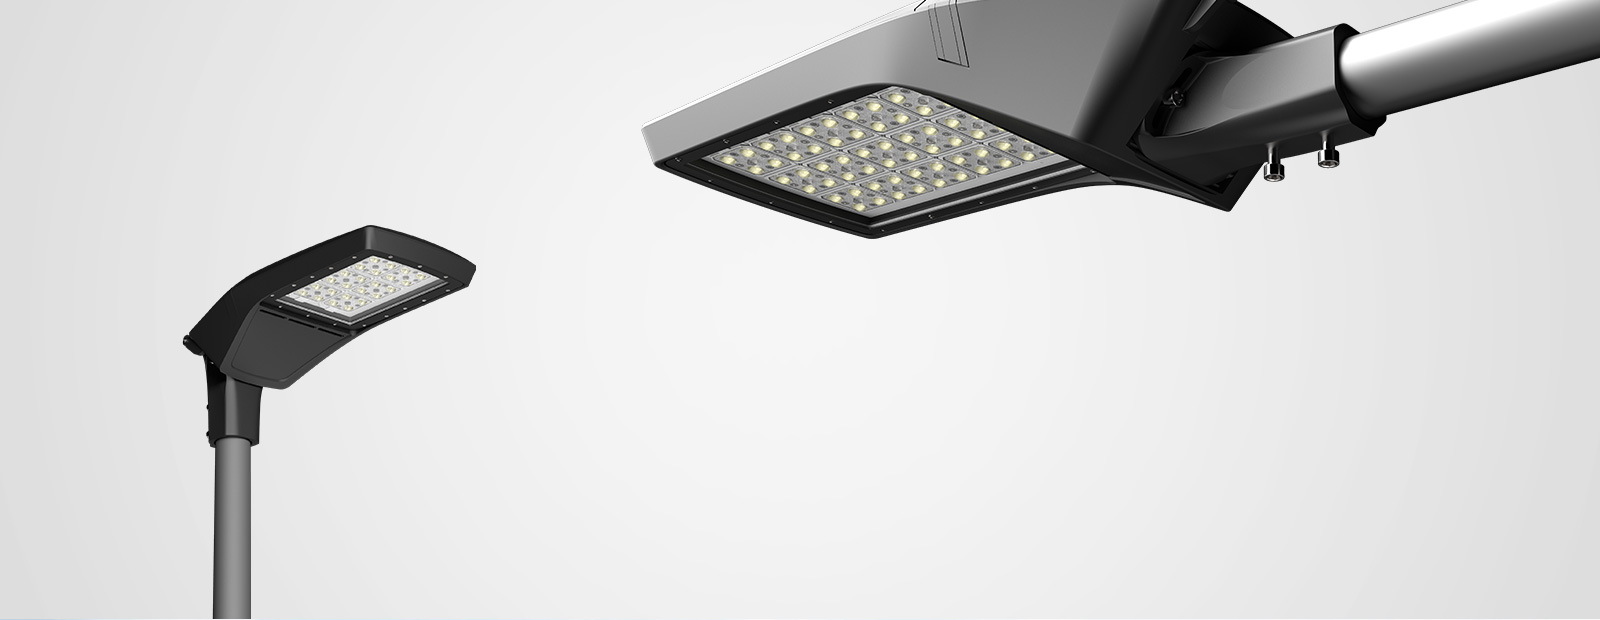 LED ROADWAY & STREET LIGHT